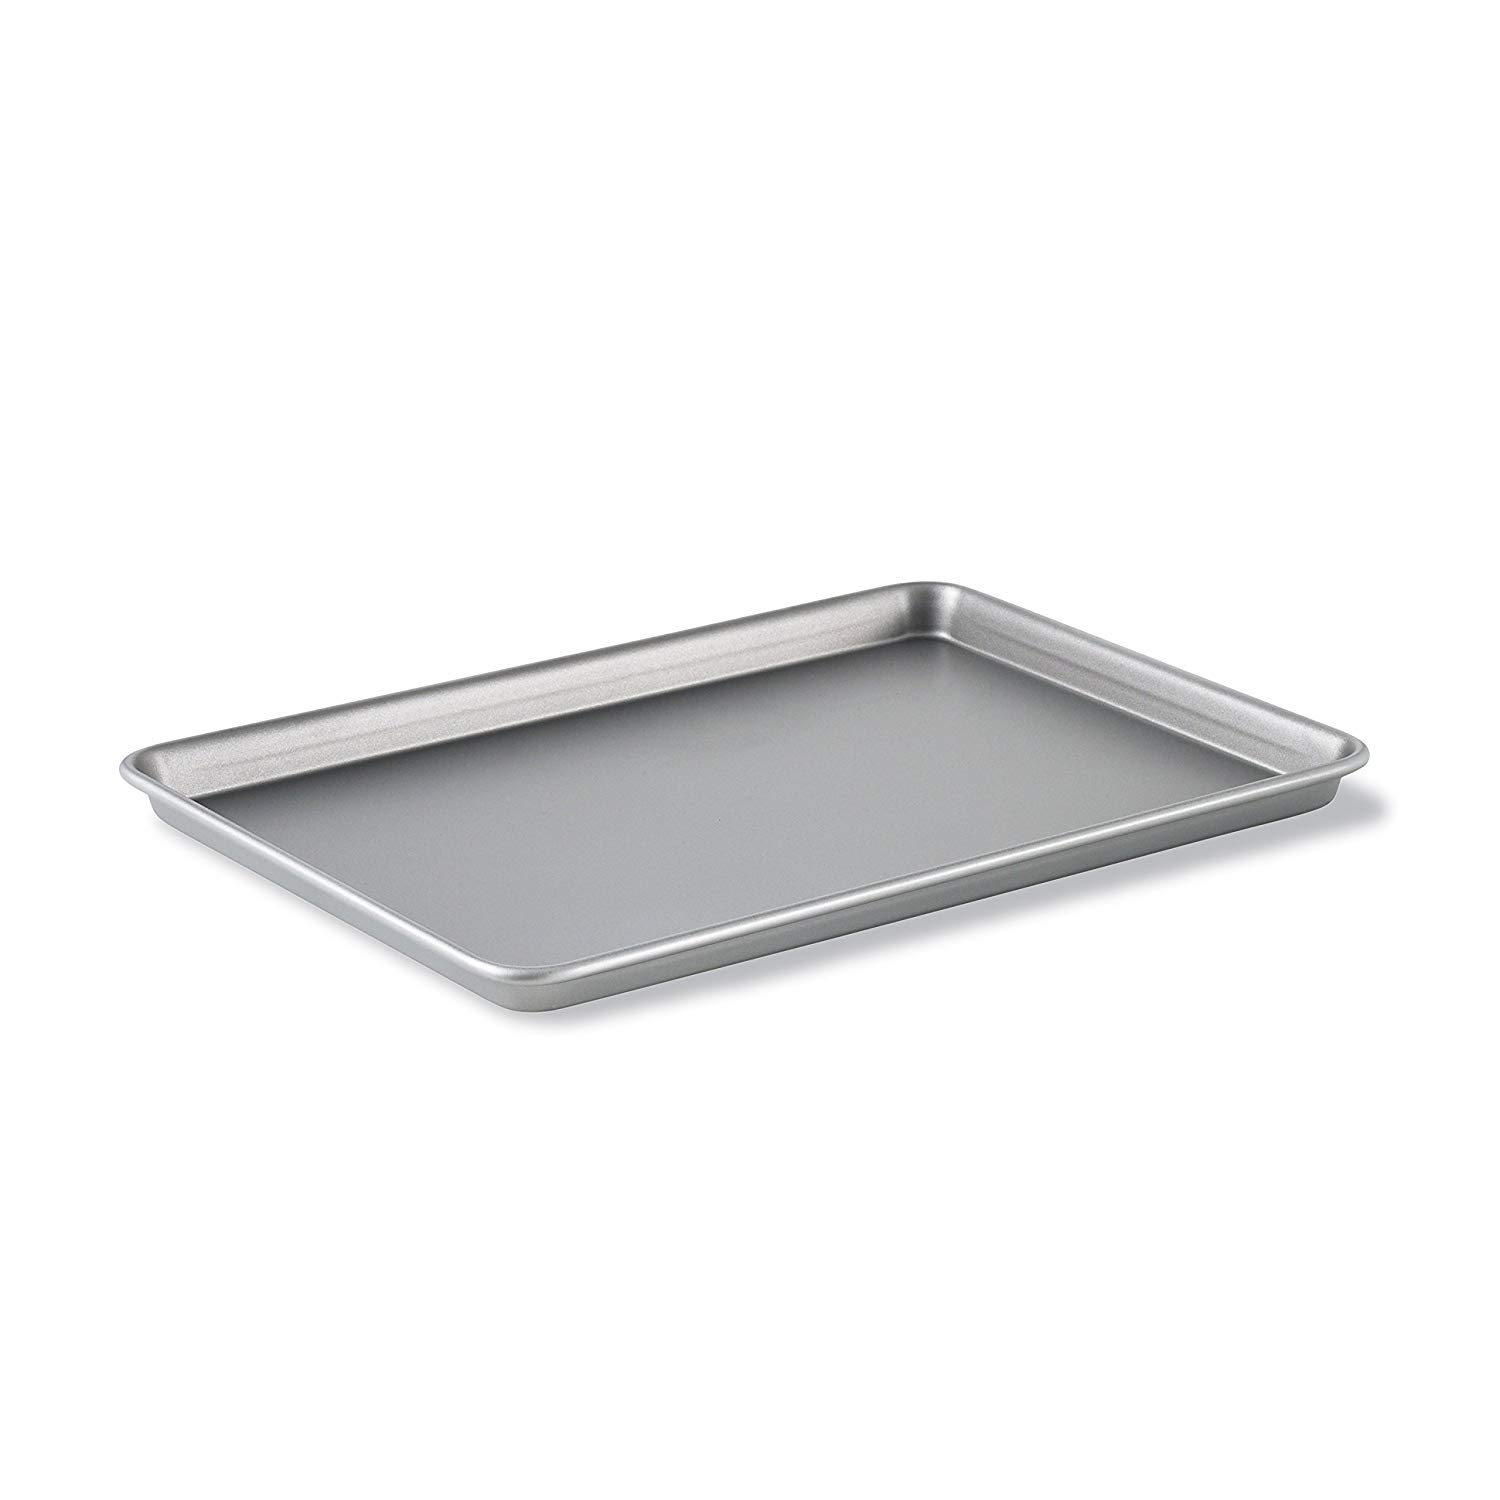 Calphalon nonstick bakeware baking sheet